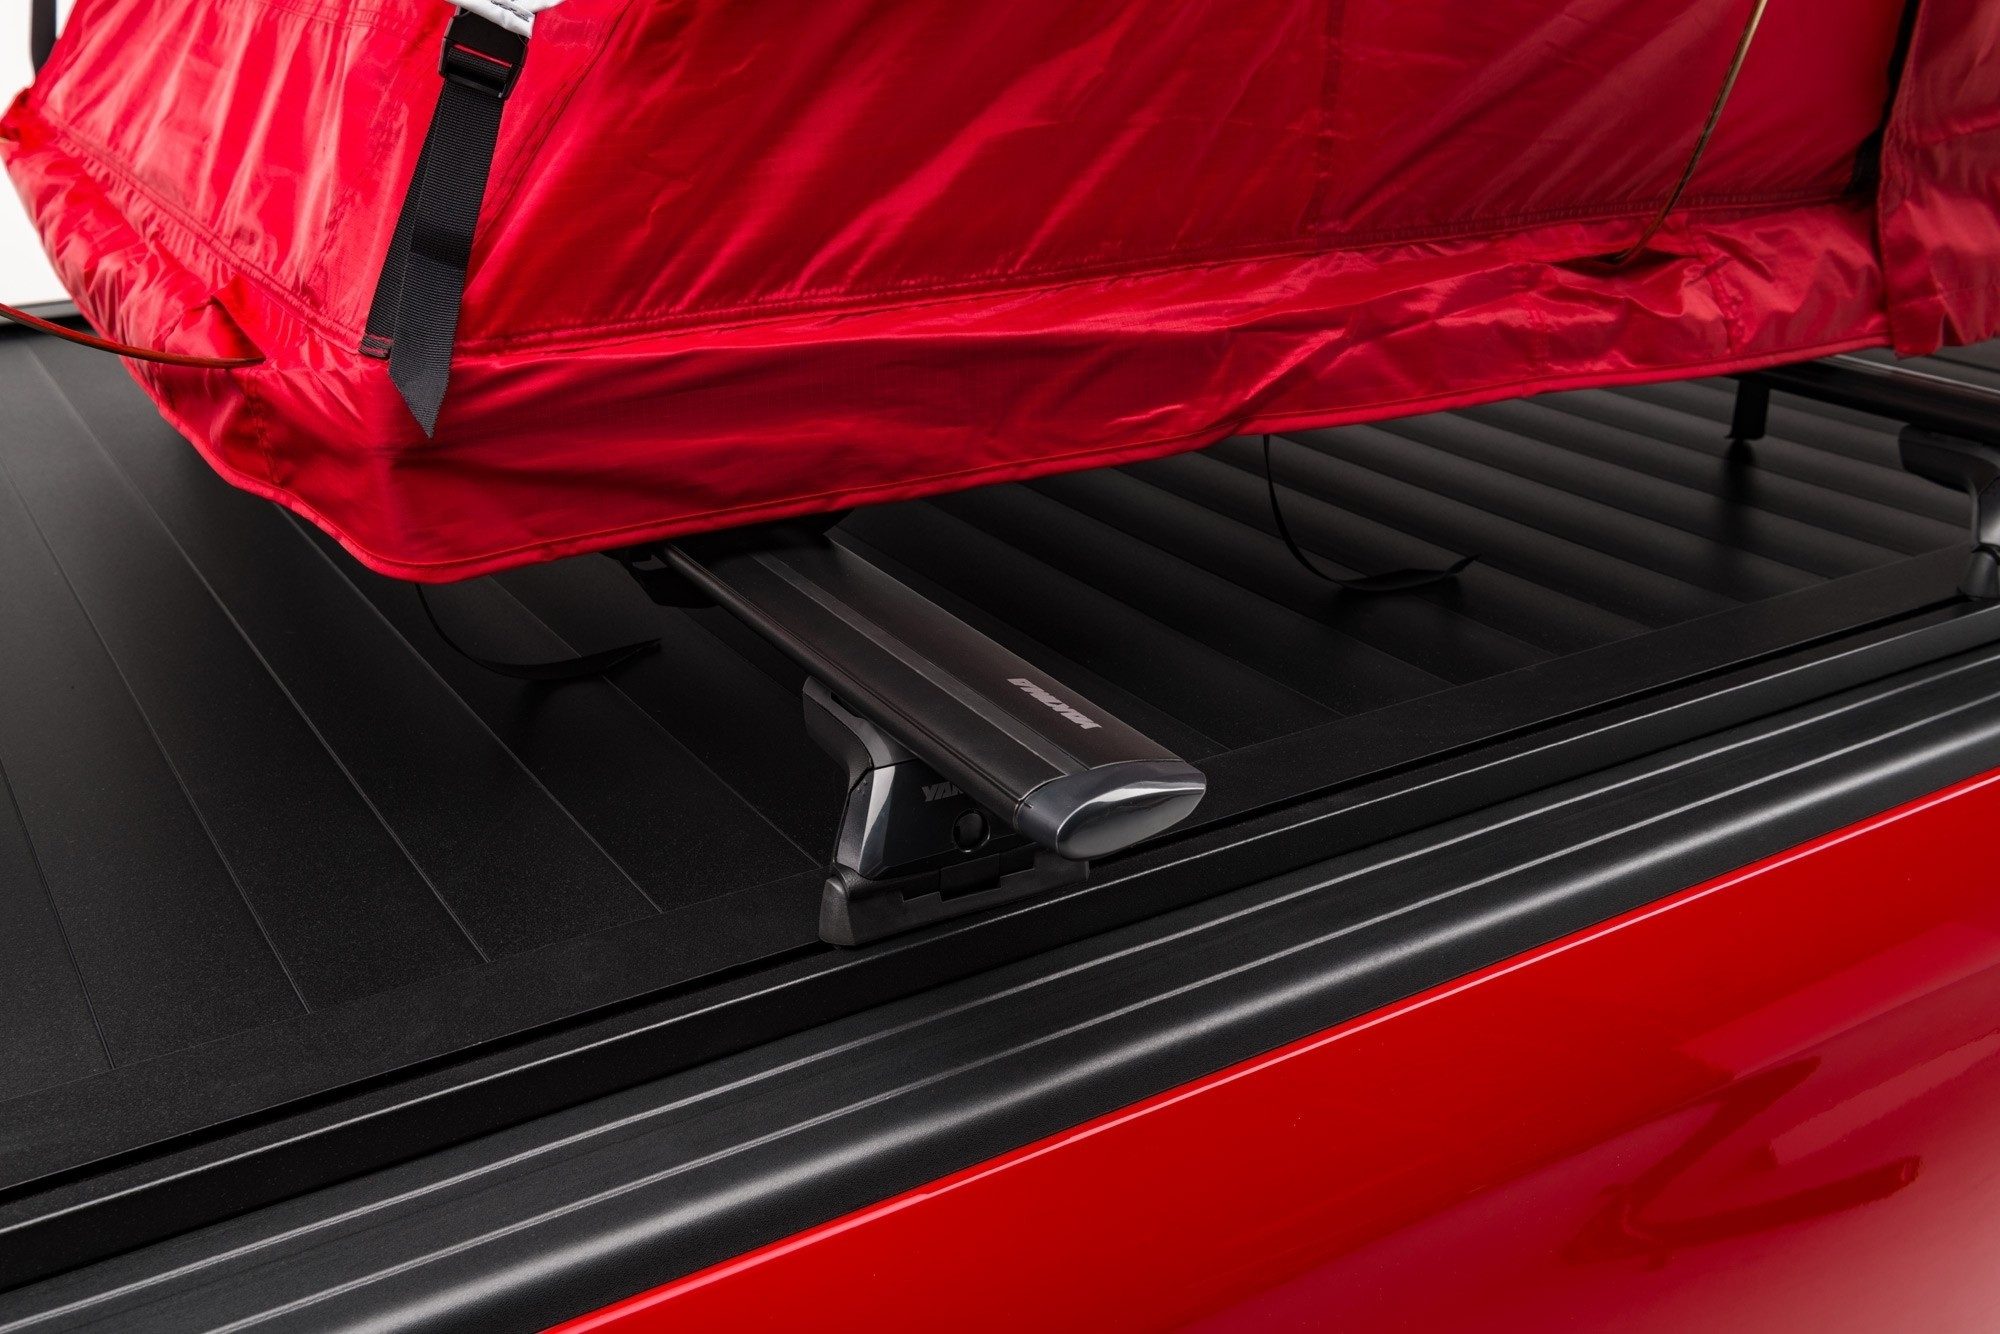 2017 Honda Ridgeline Tonneau Cover >> Dependable RetraxPRO XR Truck Covers | Tonneau Factory Outlet